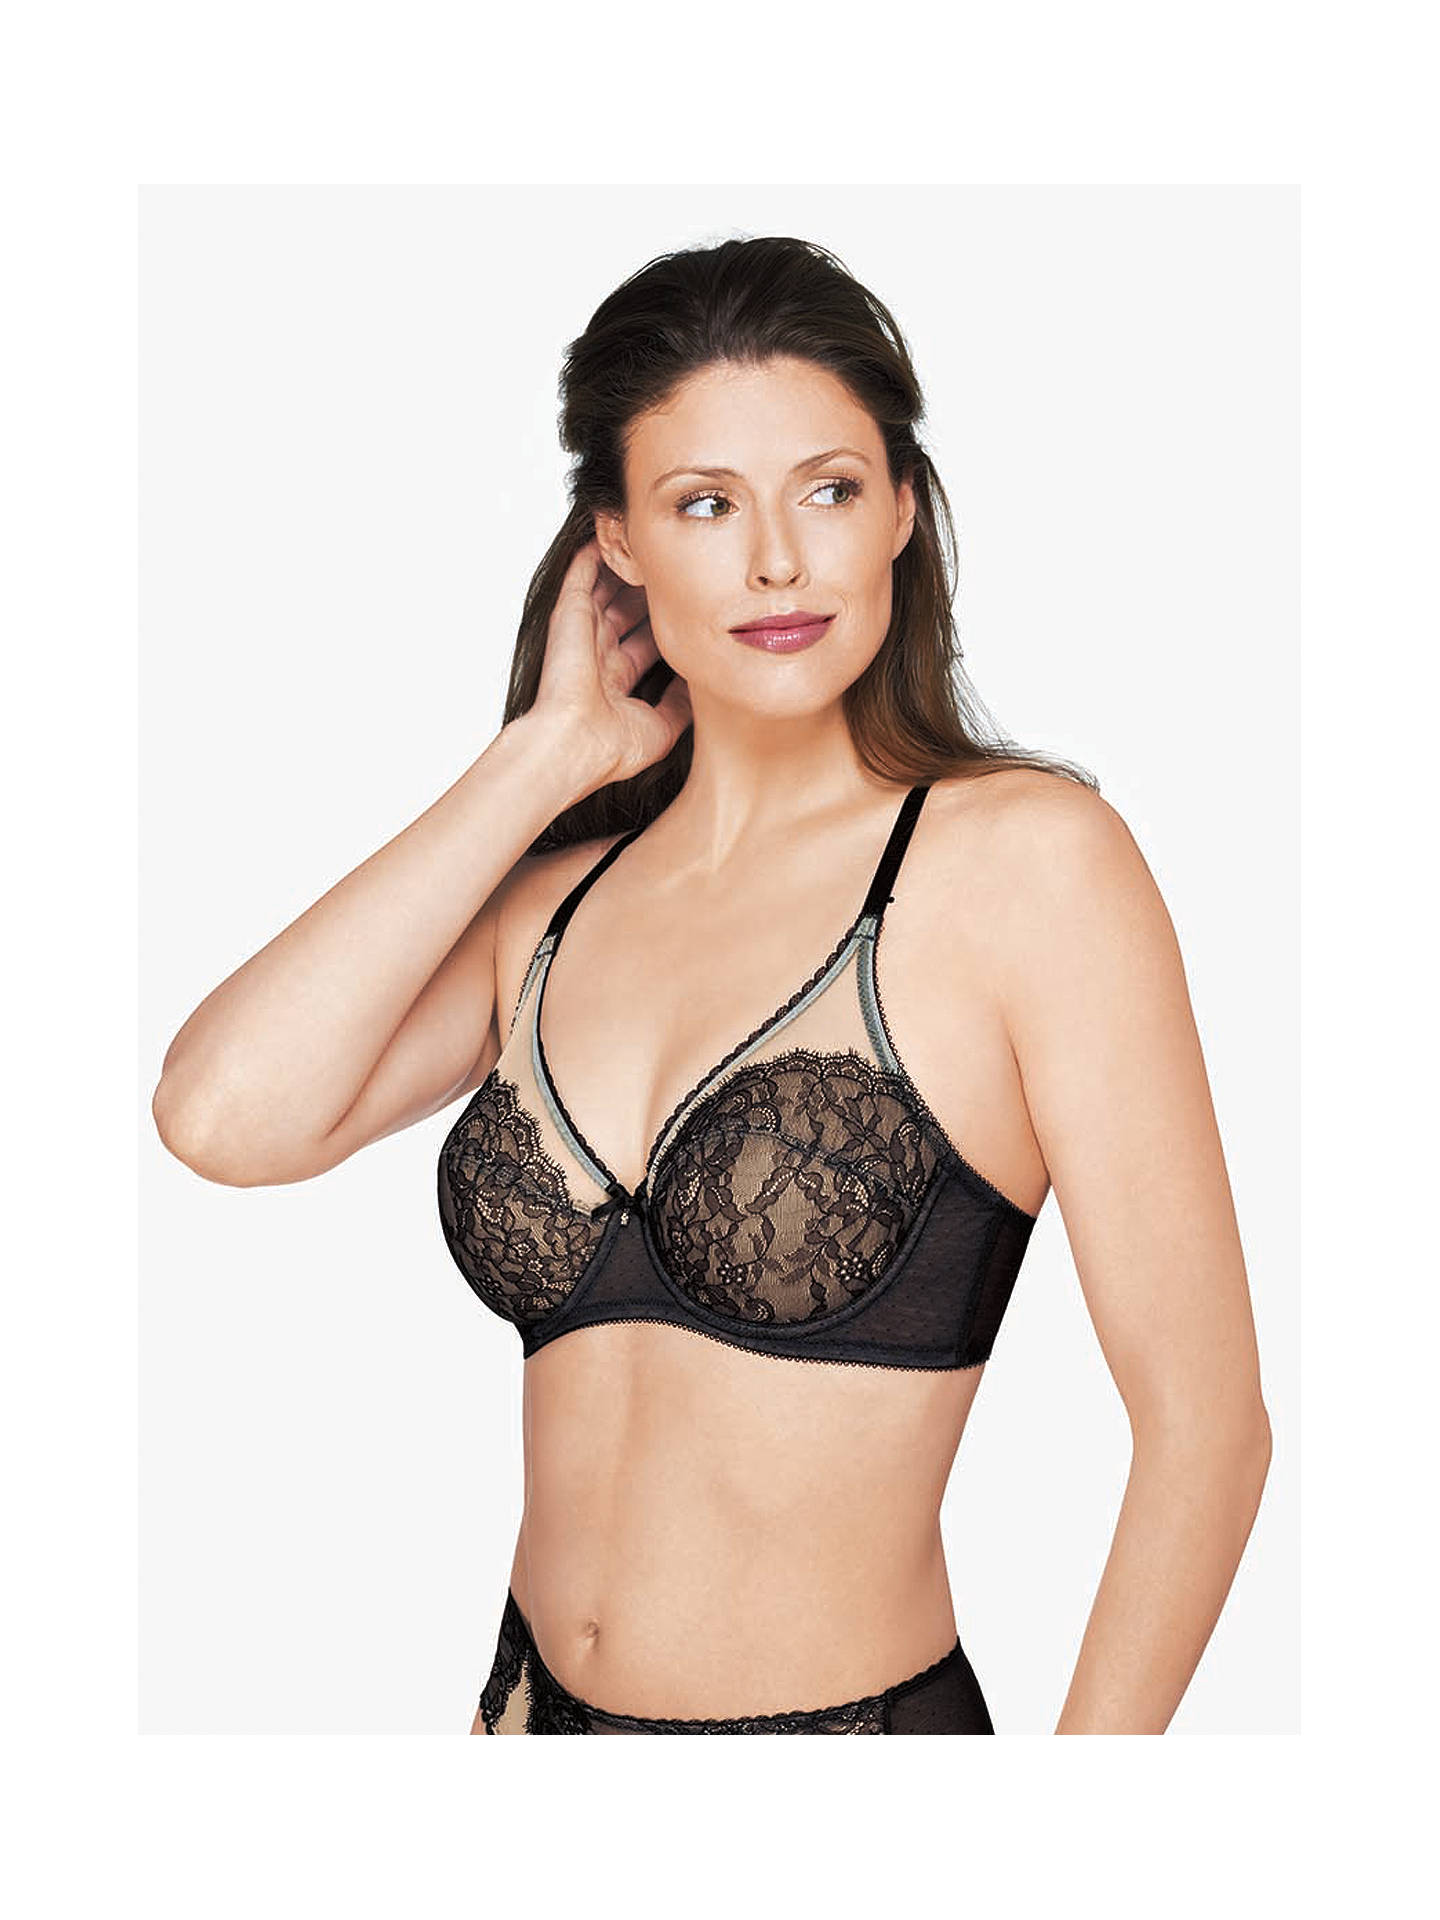 9a233f6528eac BuyWacoal Retro Chic Underwired Bra